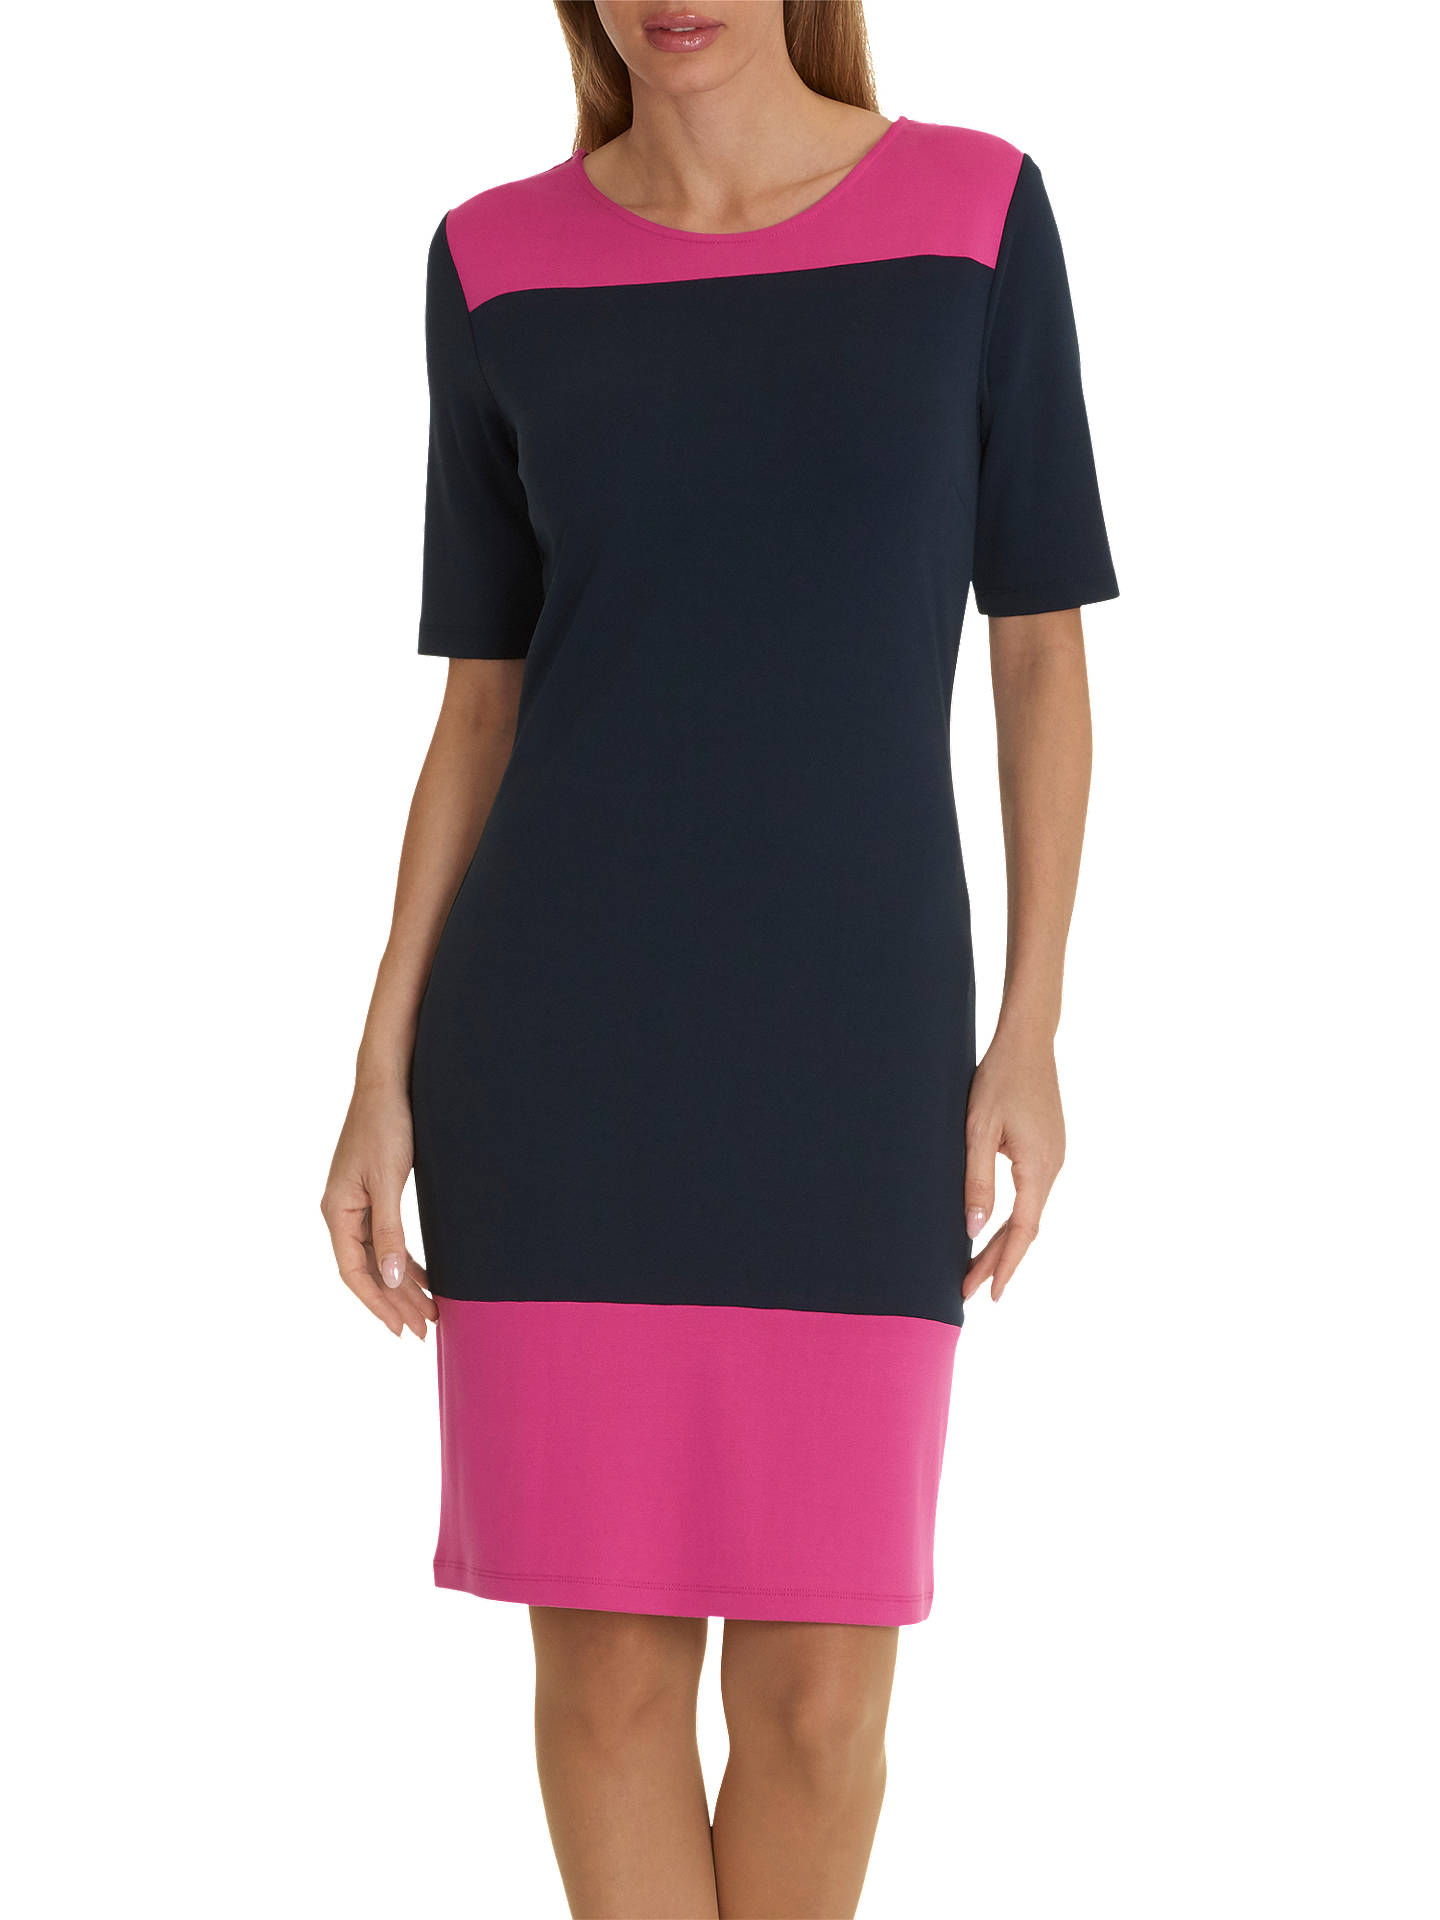 BuyBetty Barclay Short Sleeve Jersey Dress, Dark Blue/Pink, 10 Online at johnlewis.com